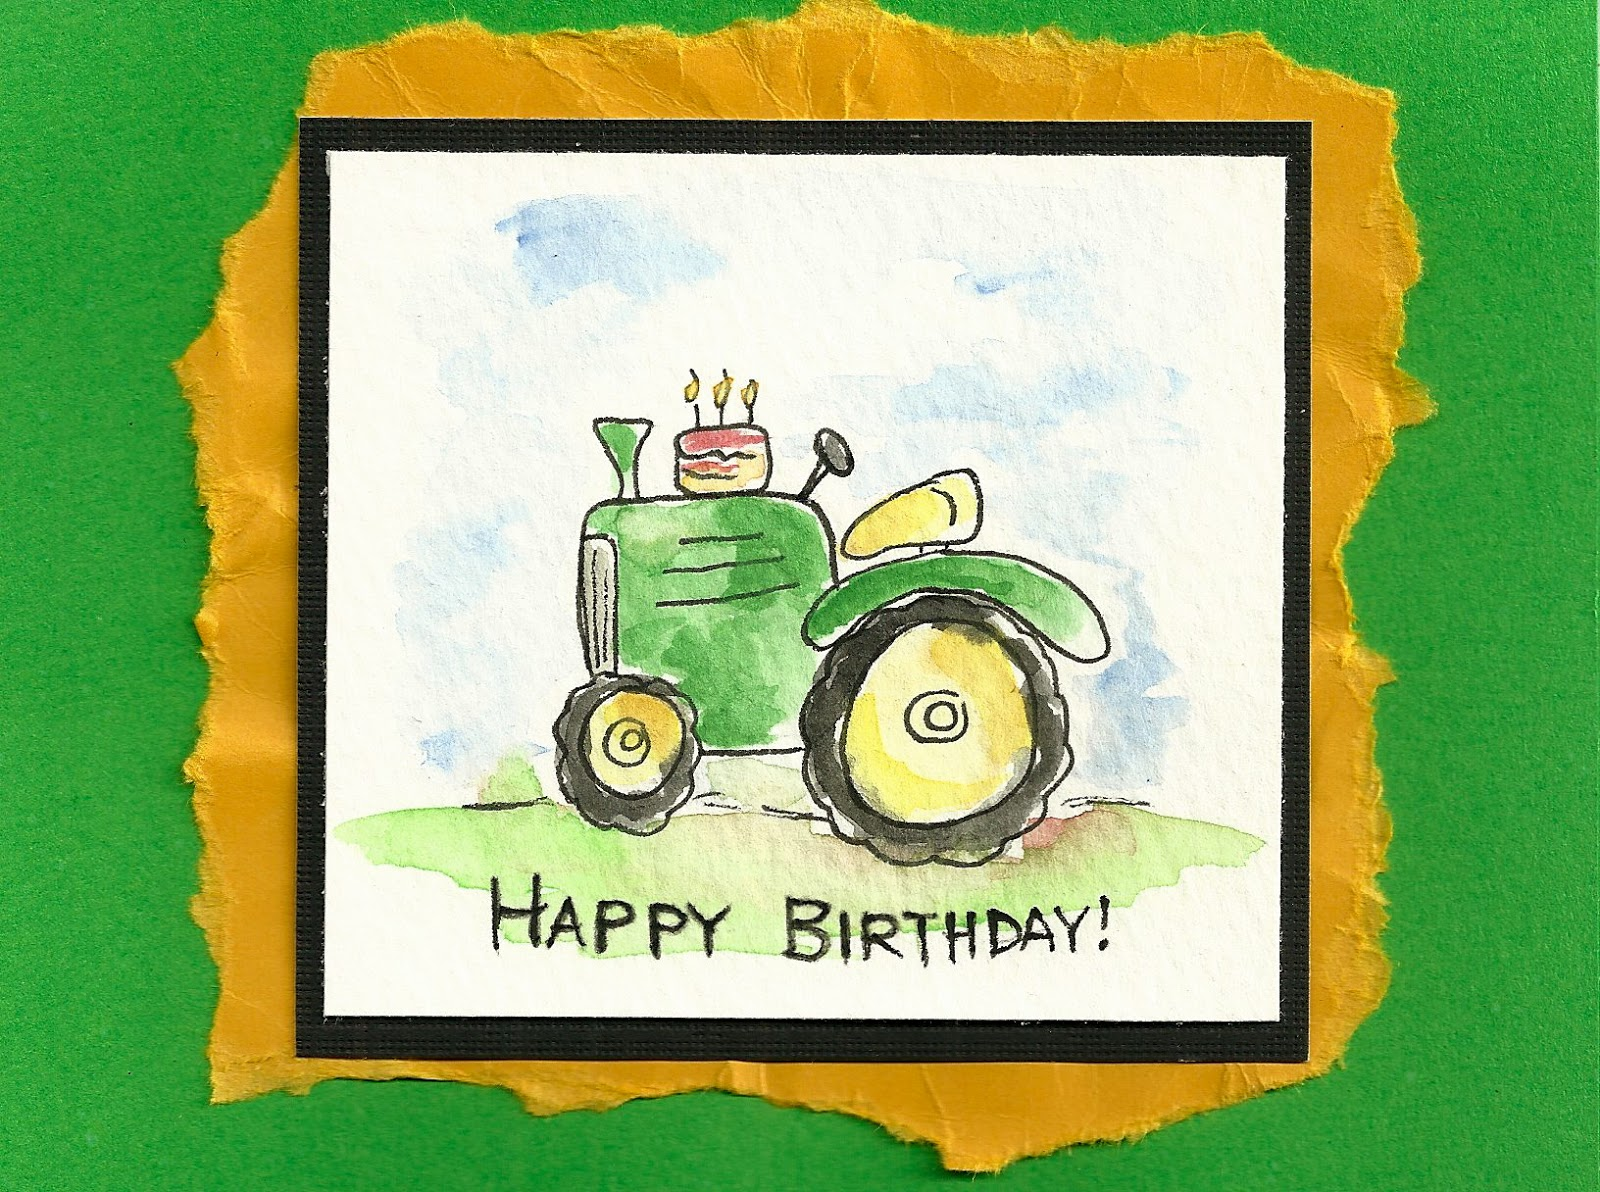 Debbie Dots Greeting Card Blog: Tractor Birthday